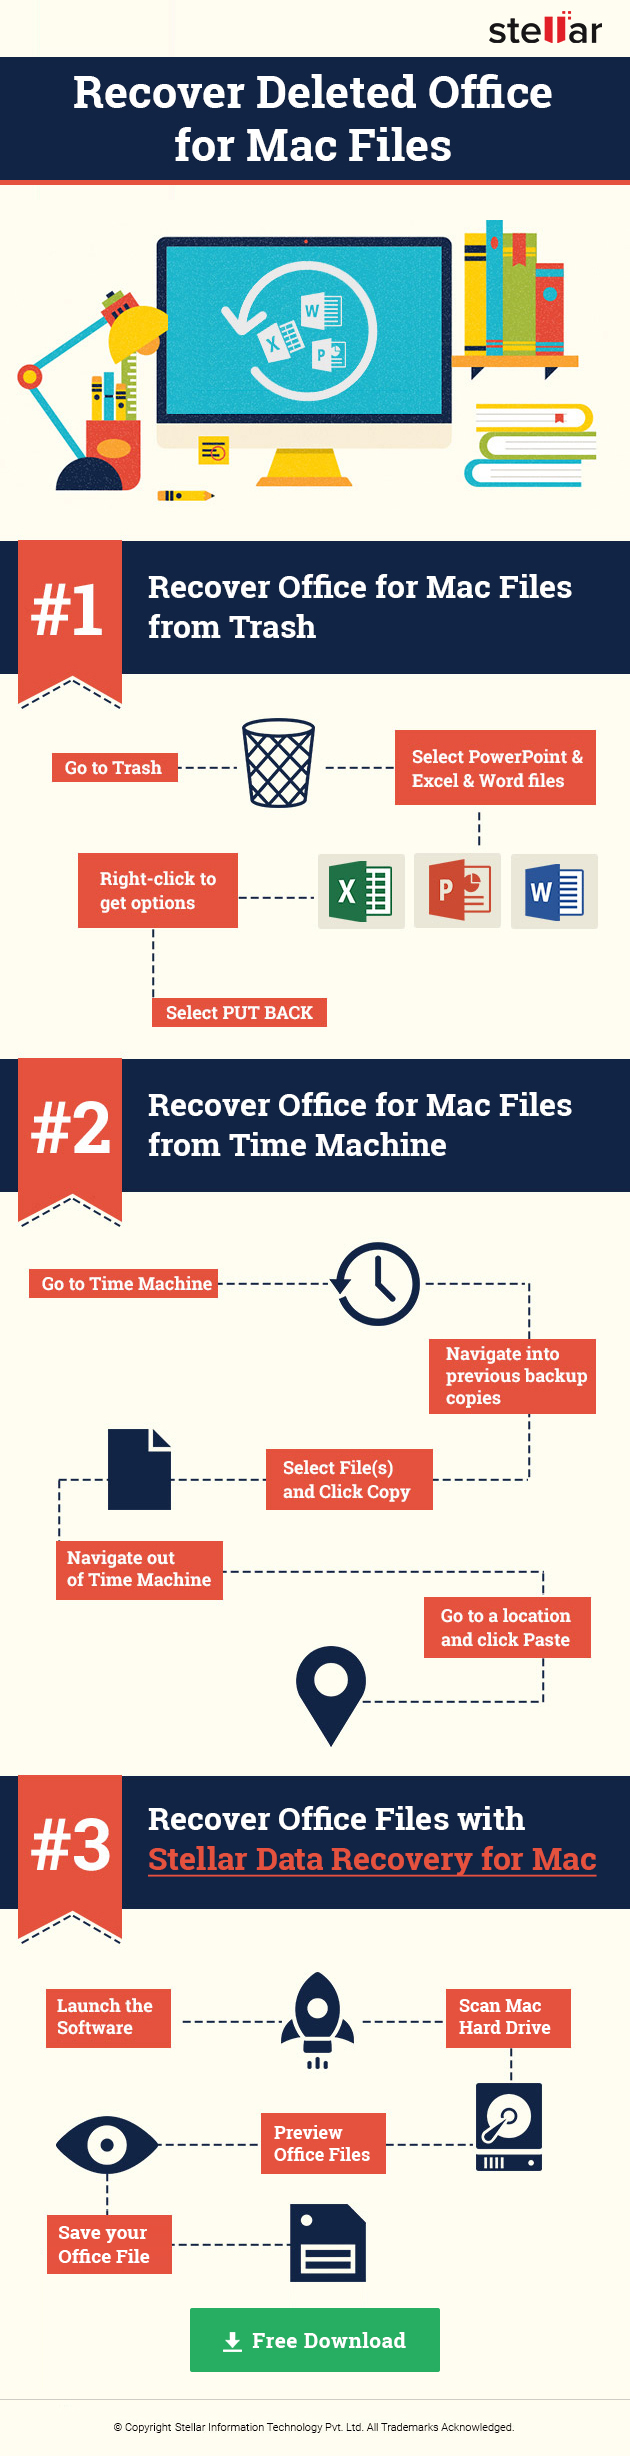 How to Recover Deleted Office for Mac Files from your Computer